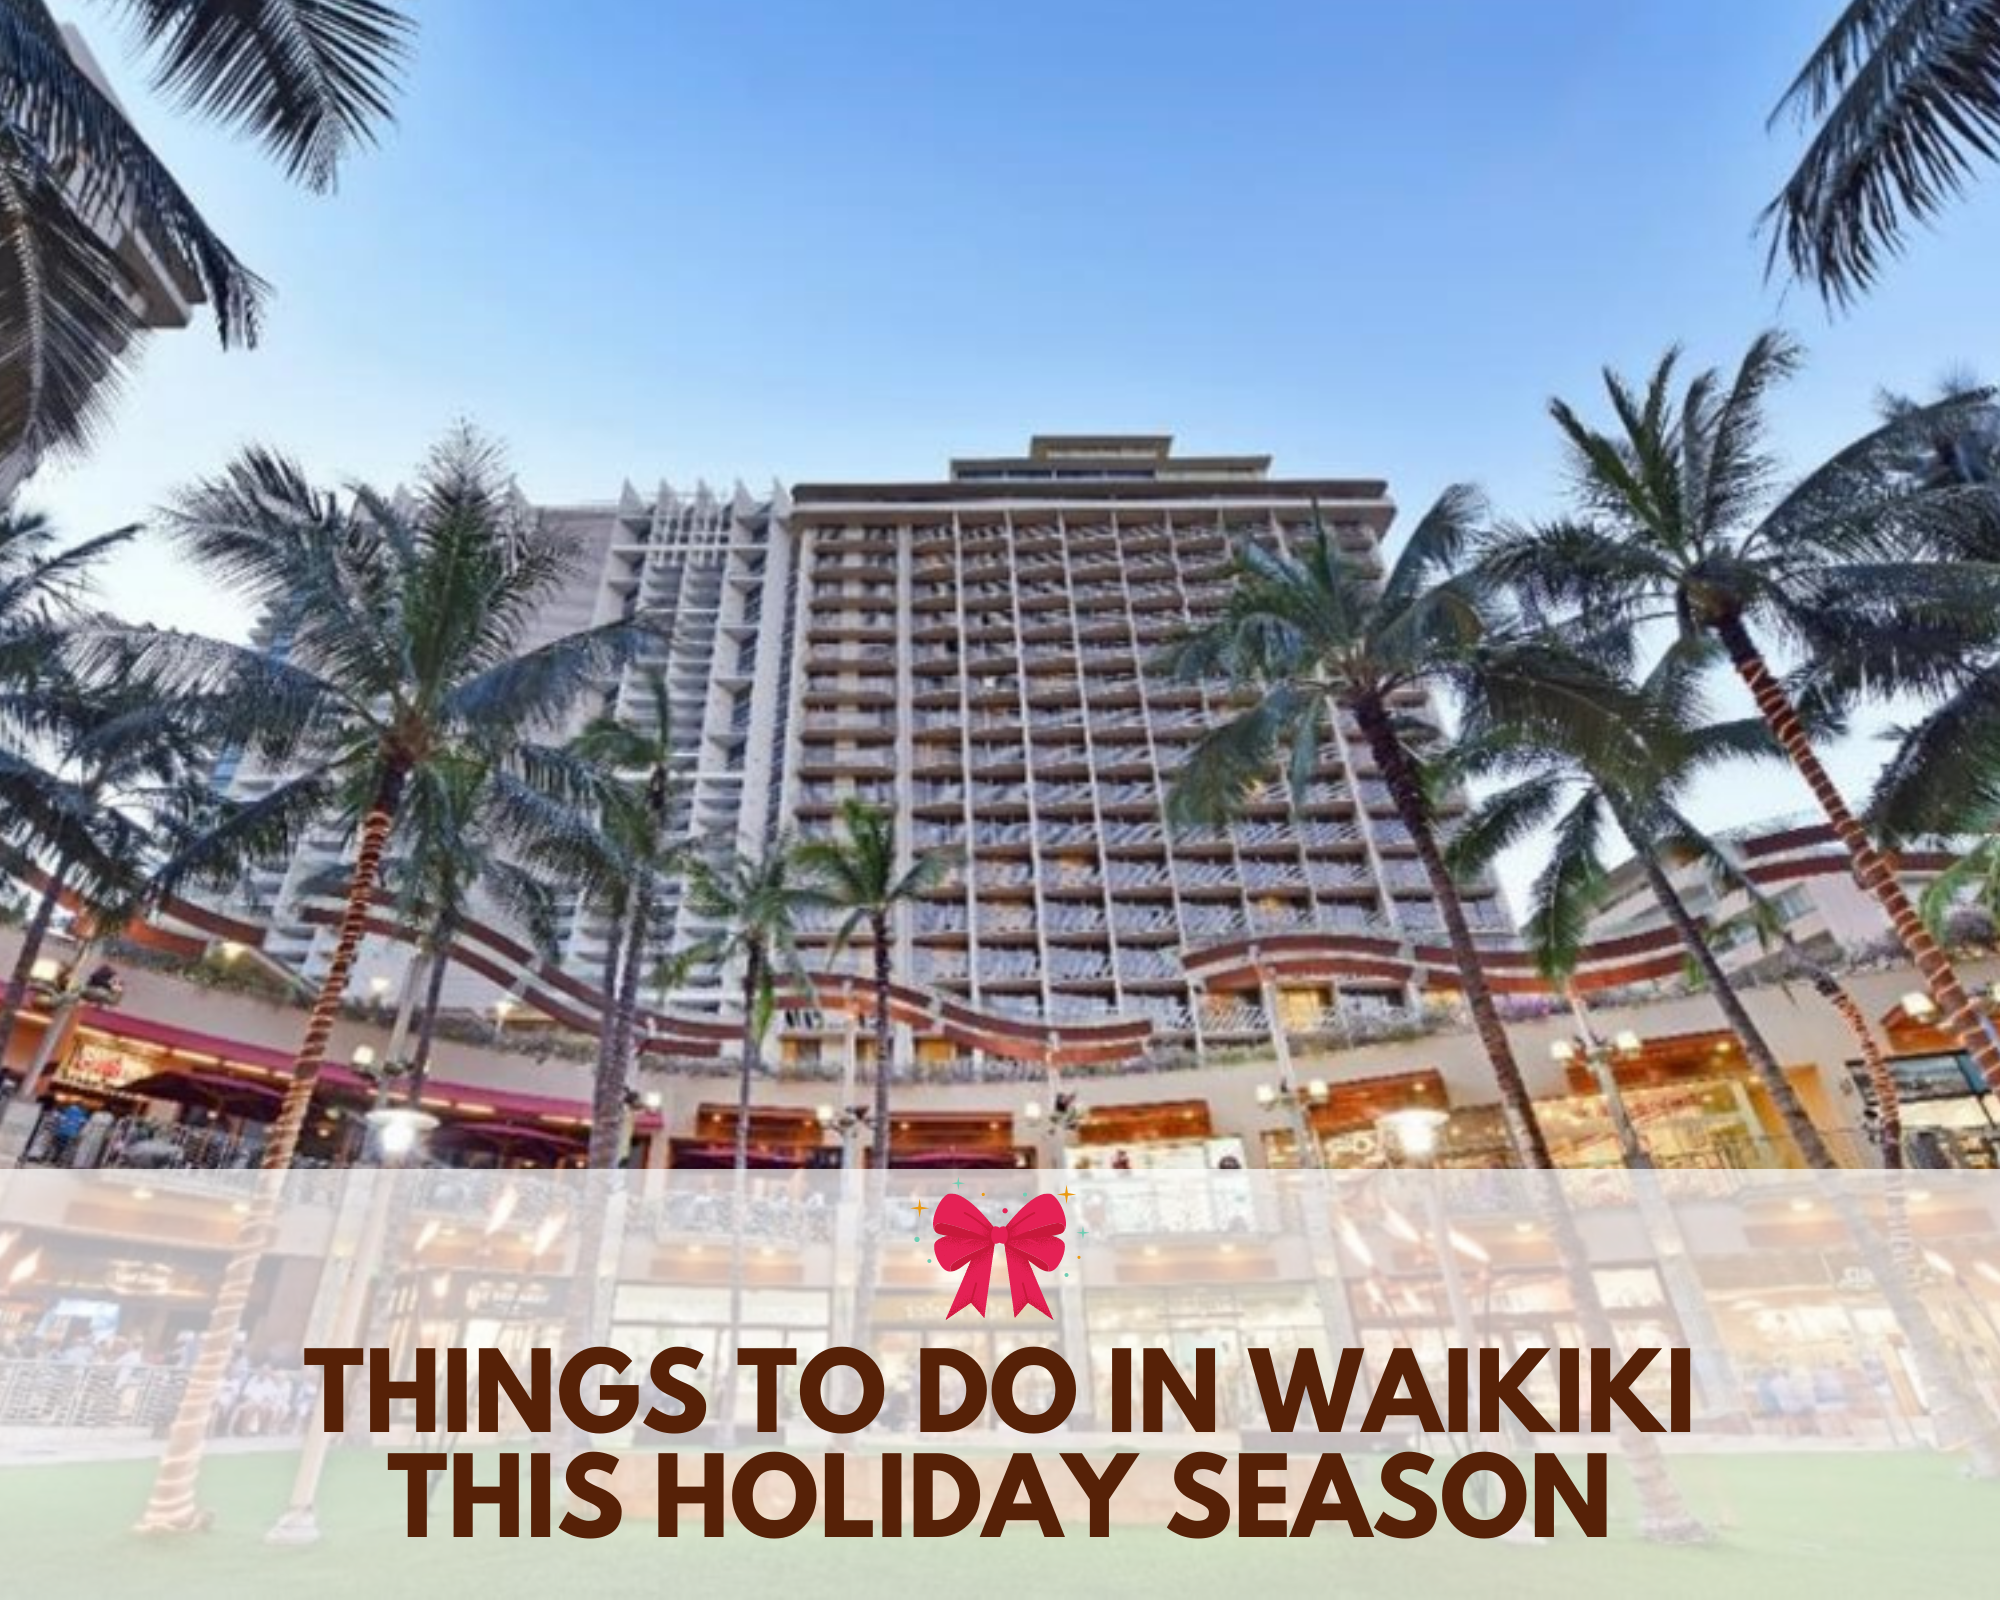 Things to Do in Waikiki This Holiday Season